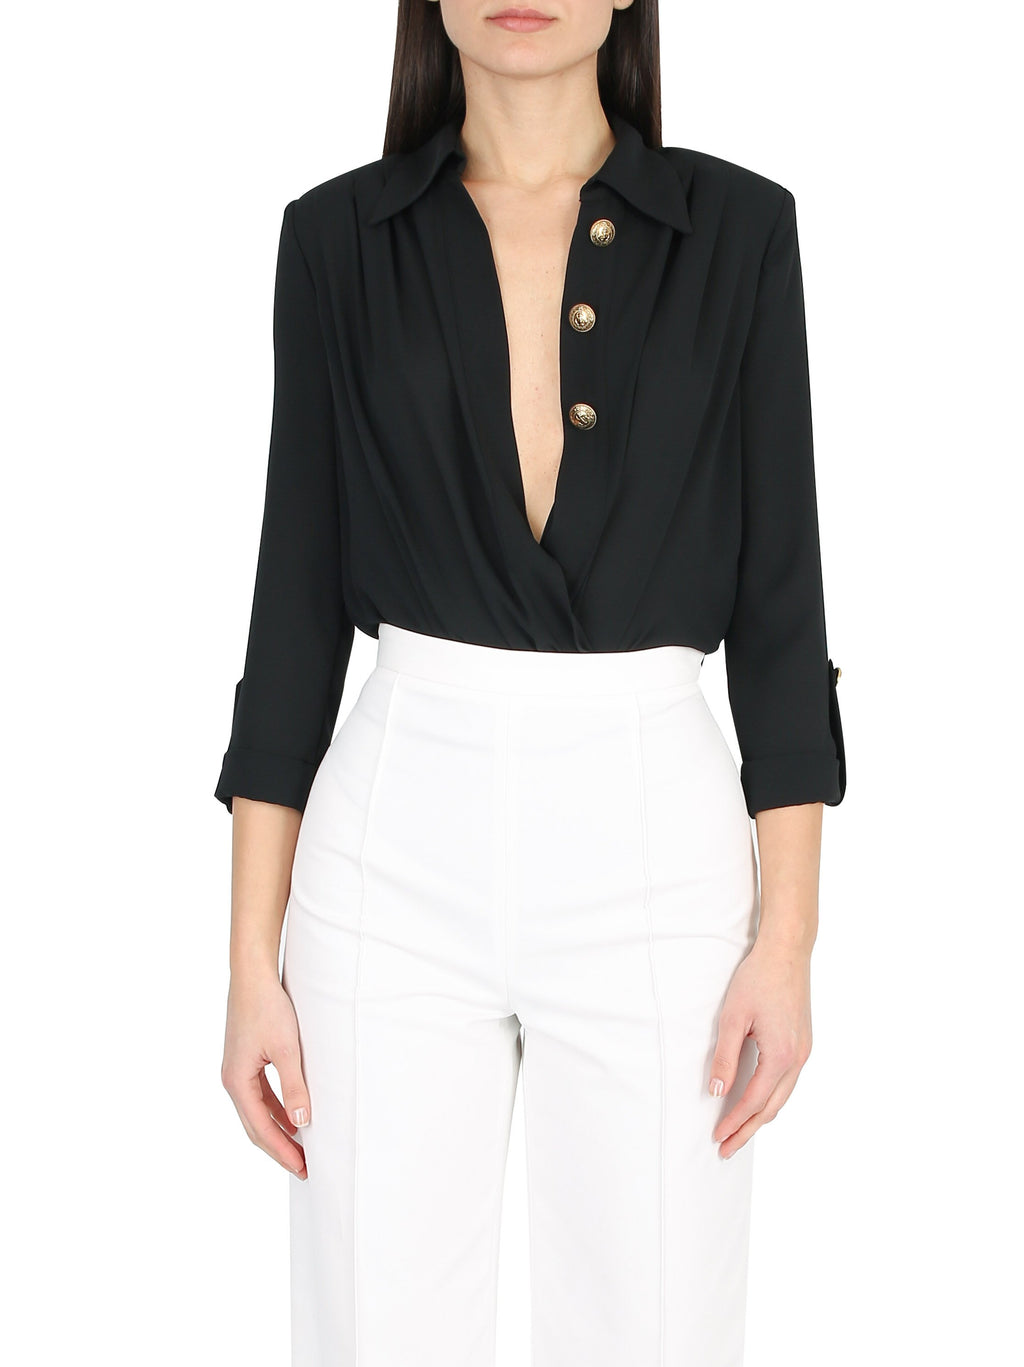 Wrap front body shirt with gold buttons